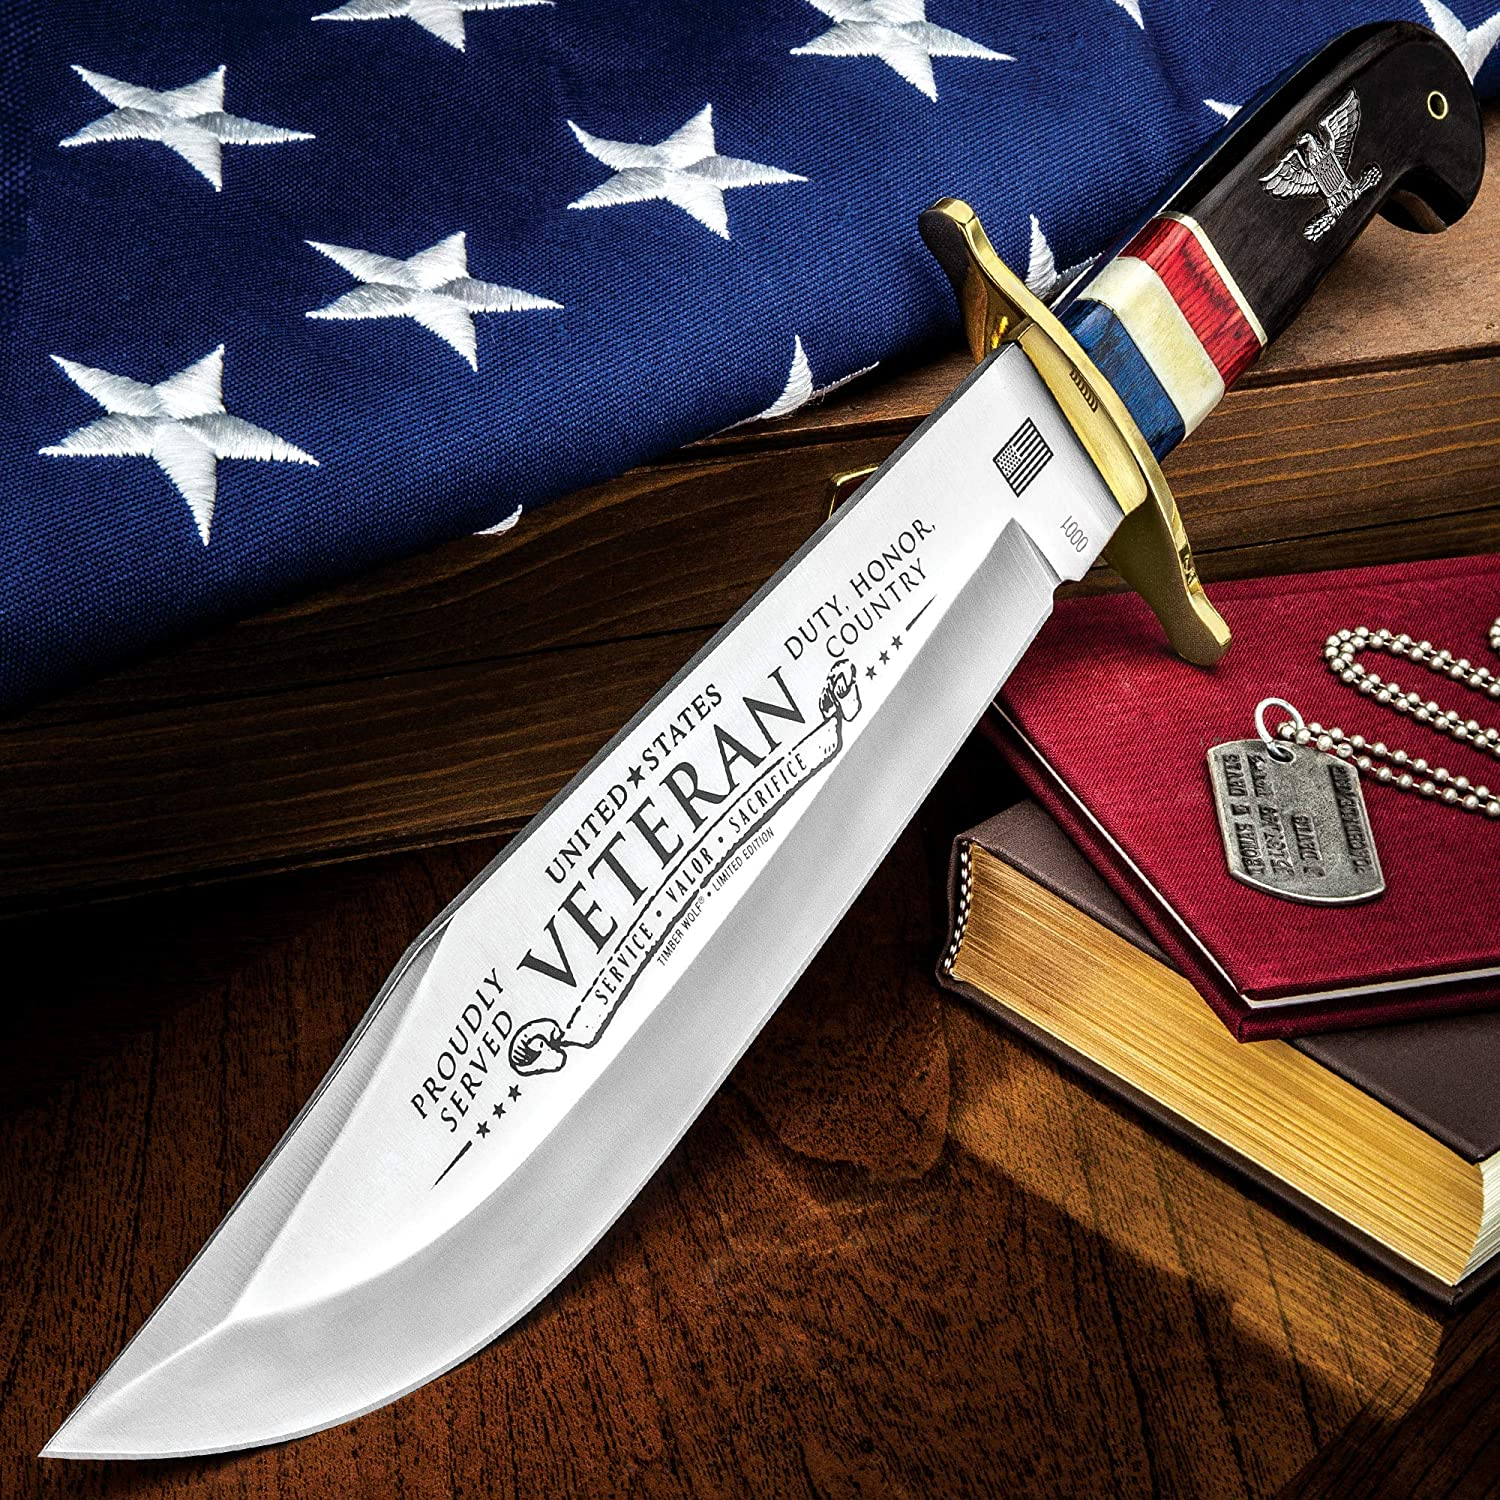 TIMBER WOLF 2018 American Veteran Bowie Knife – Stainless Steel Blade, Bone and Wooden Handle, Brass Guard and Pins – Length 16